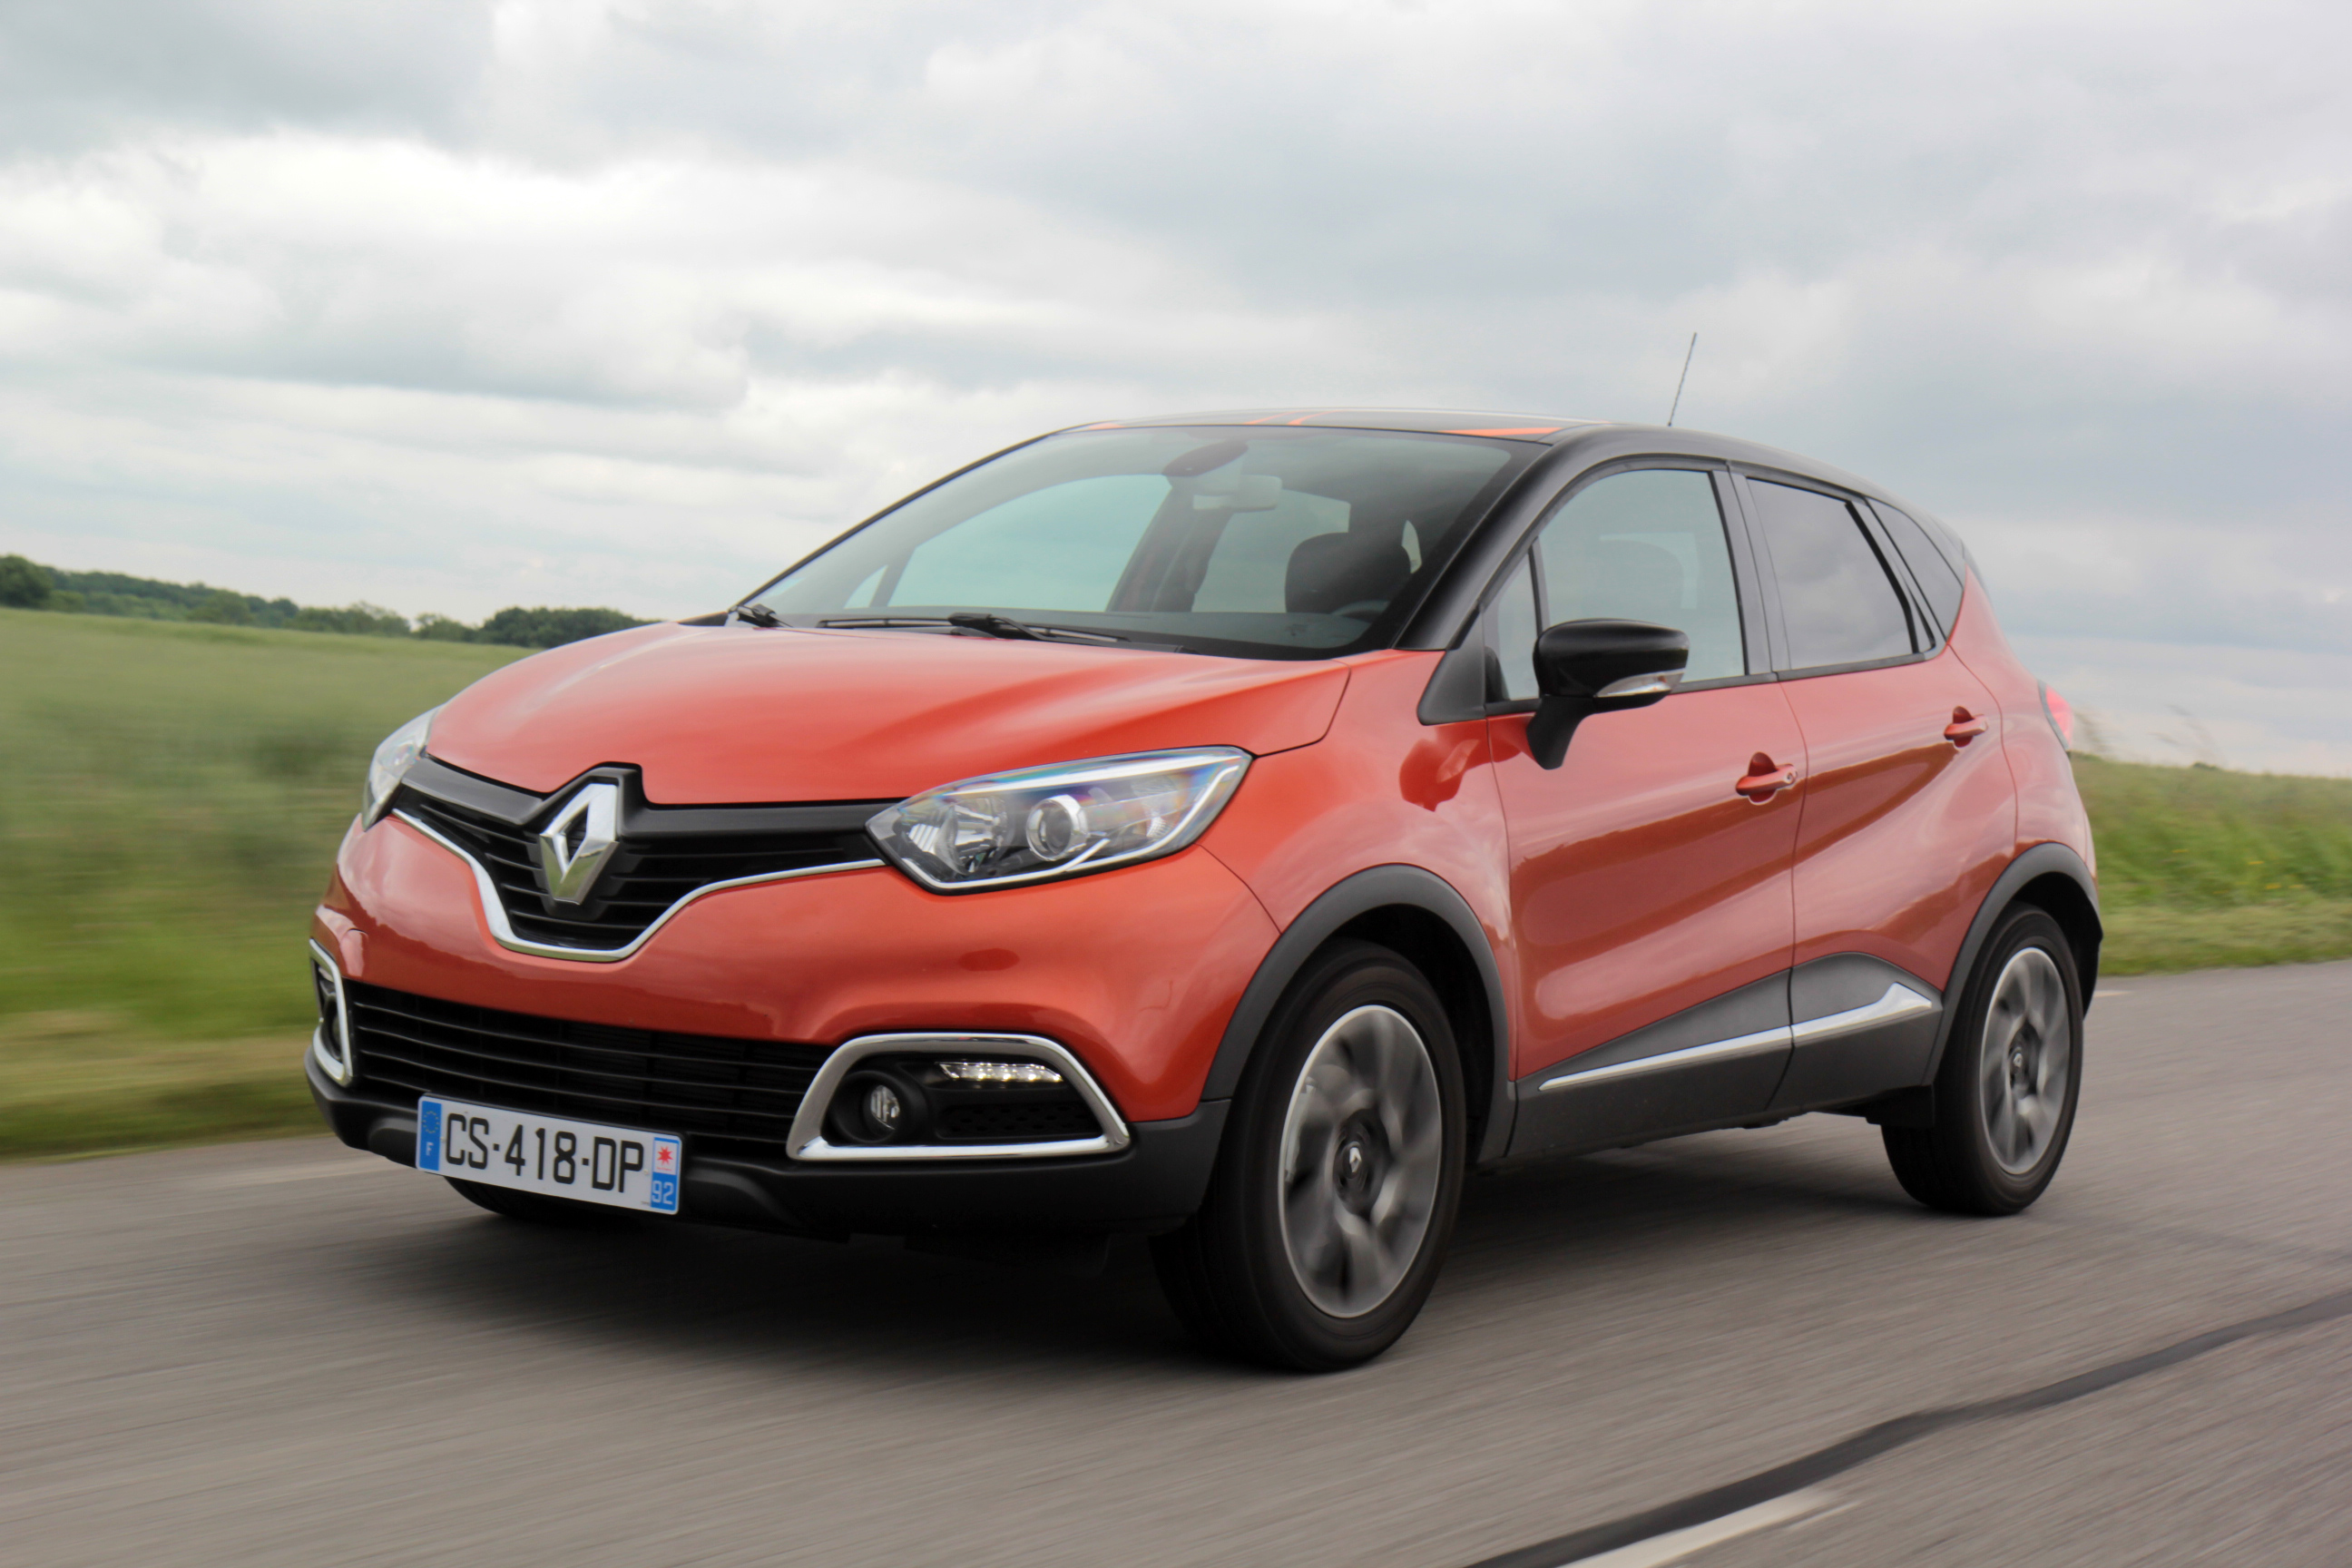 comparatif vid o renault captur vs peugeot 2008 coup de griffe sur le captur. Black Bedroom Furniture Sets. Home Design Ideas